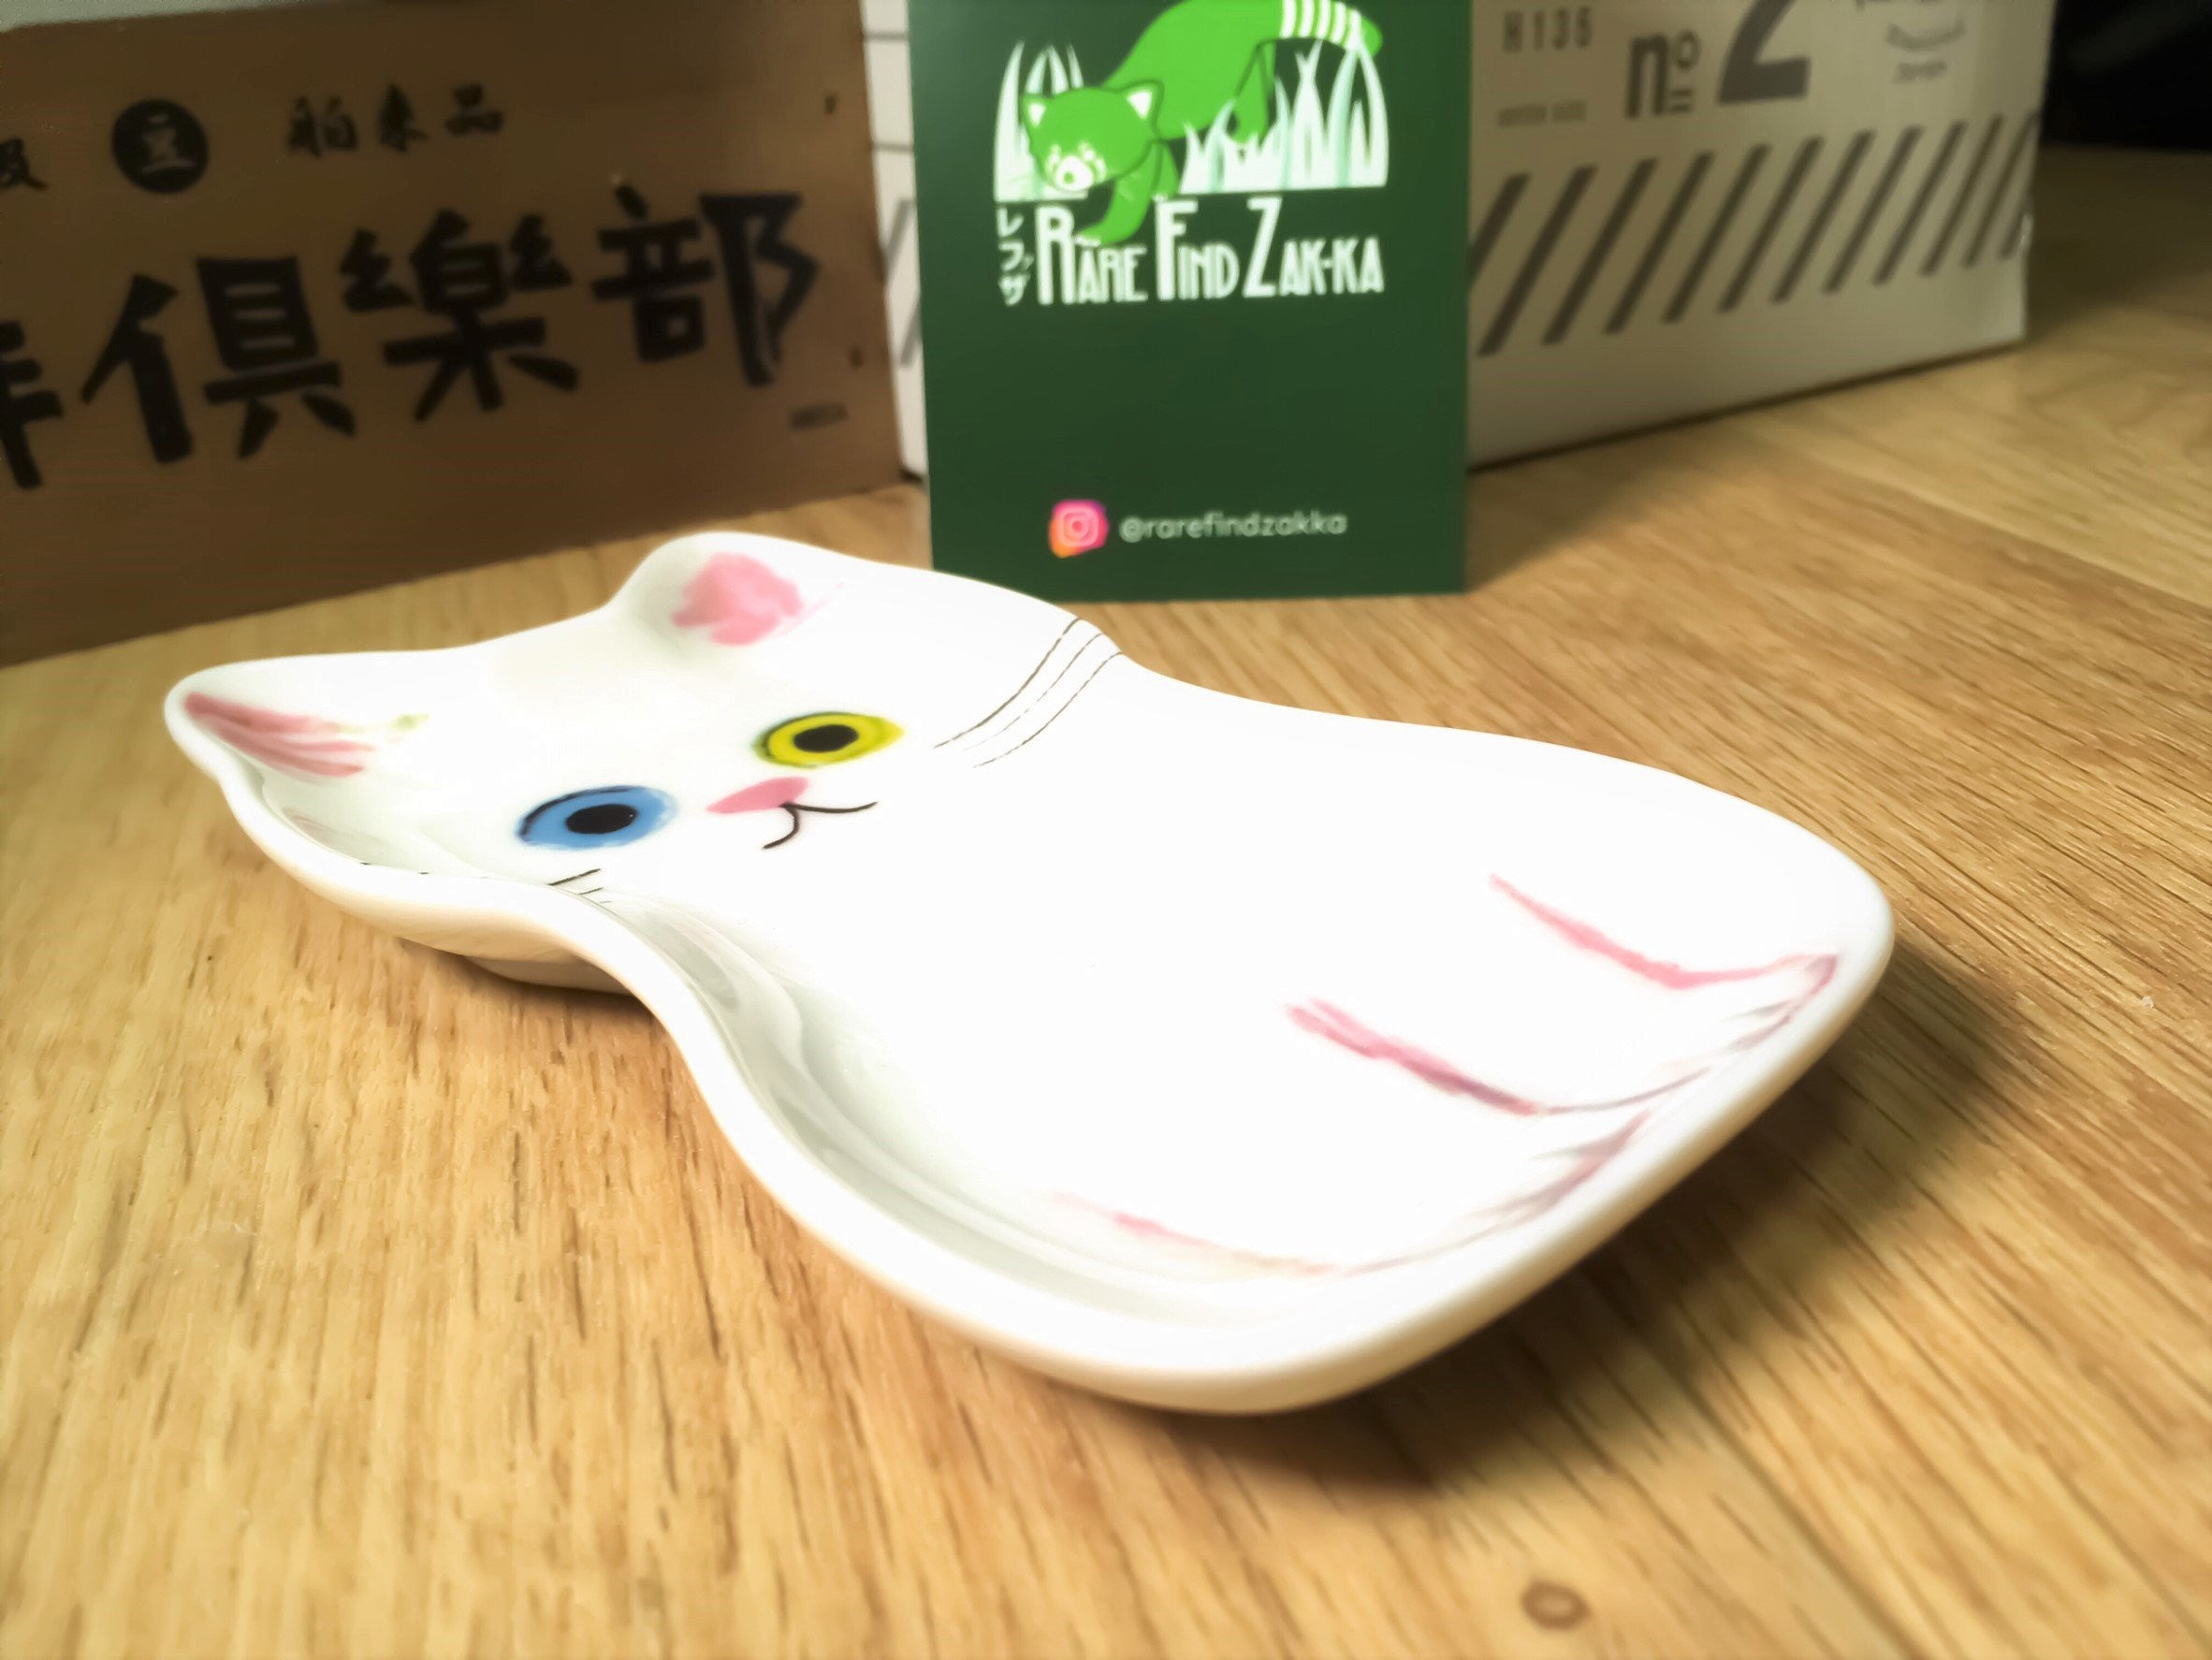 Odd-Eyed Sitting White Cat Mini Dish | RARE FIND ZAKKA